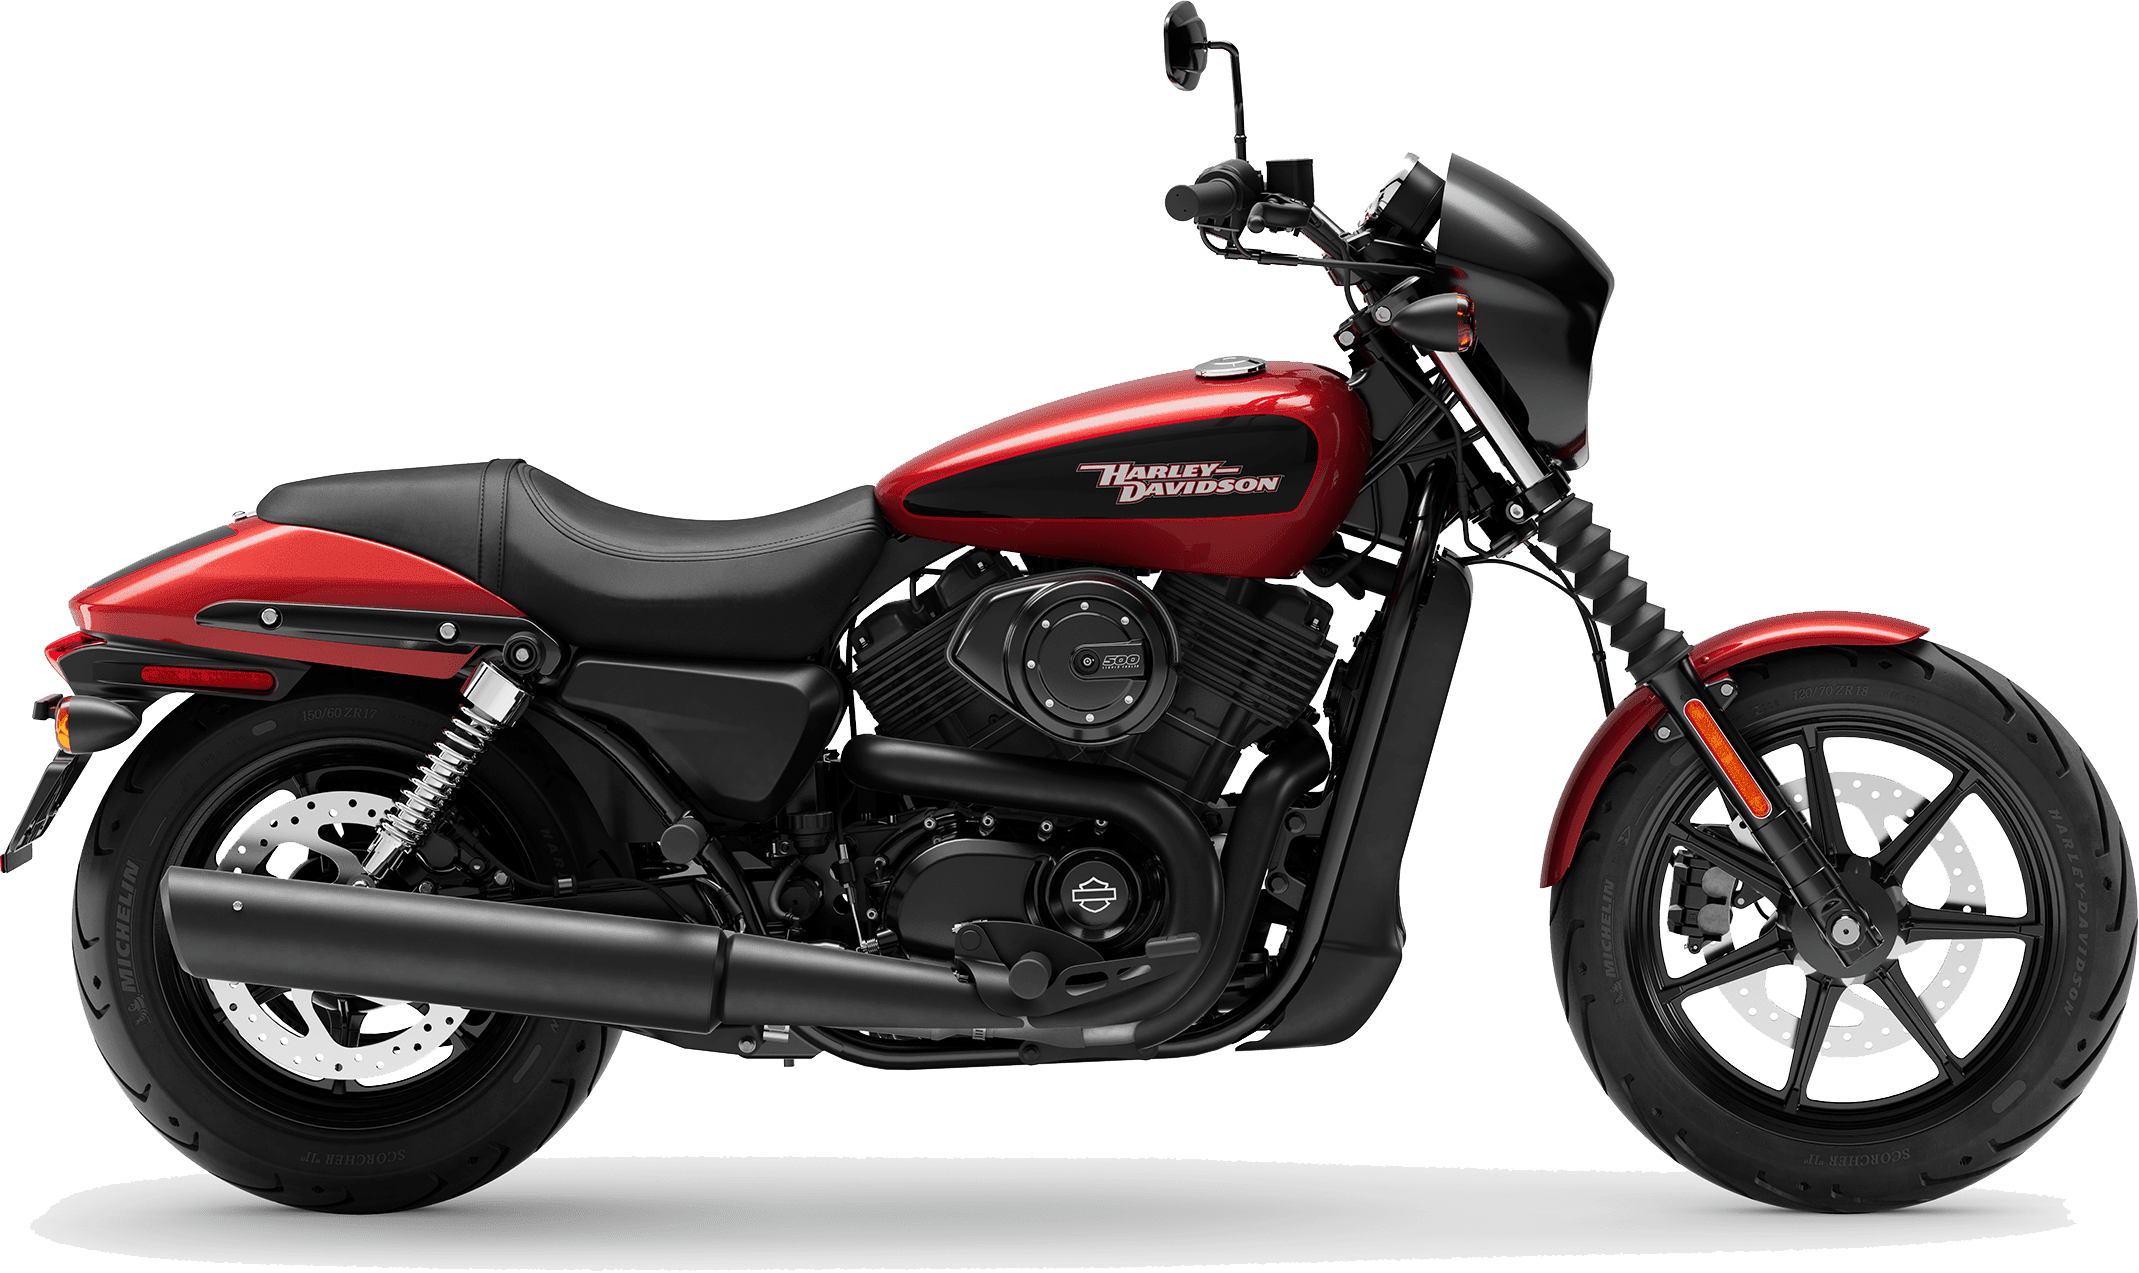 2019 Harley-Davidson H-D Street 500 Wicked Red